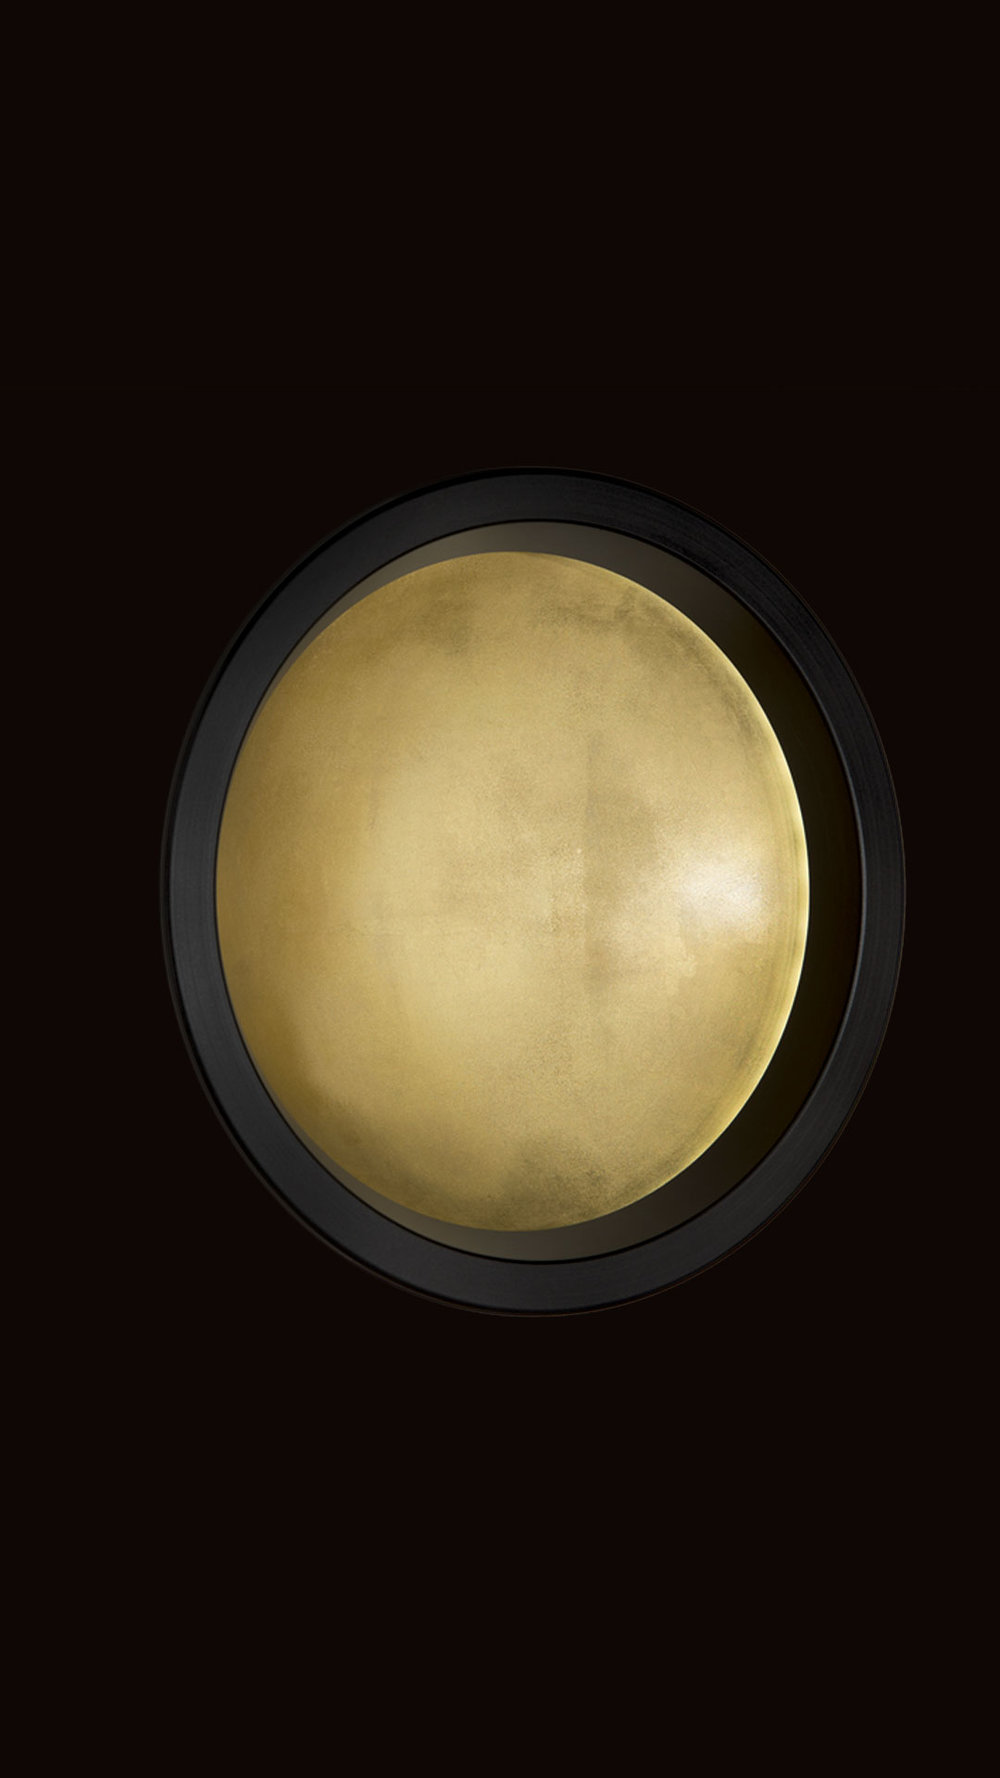 Portal LED In-Wall - Recessed MountFrame: Blackened Aluminum or White PrimerInterior: Yellow Gold Leaf or White Gold Leaf